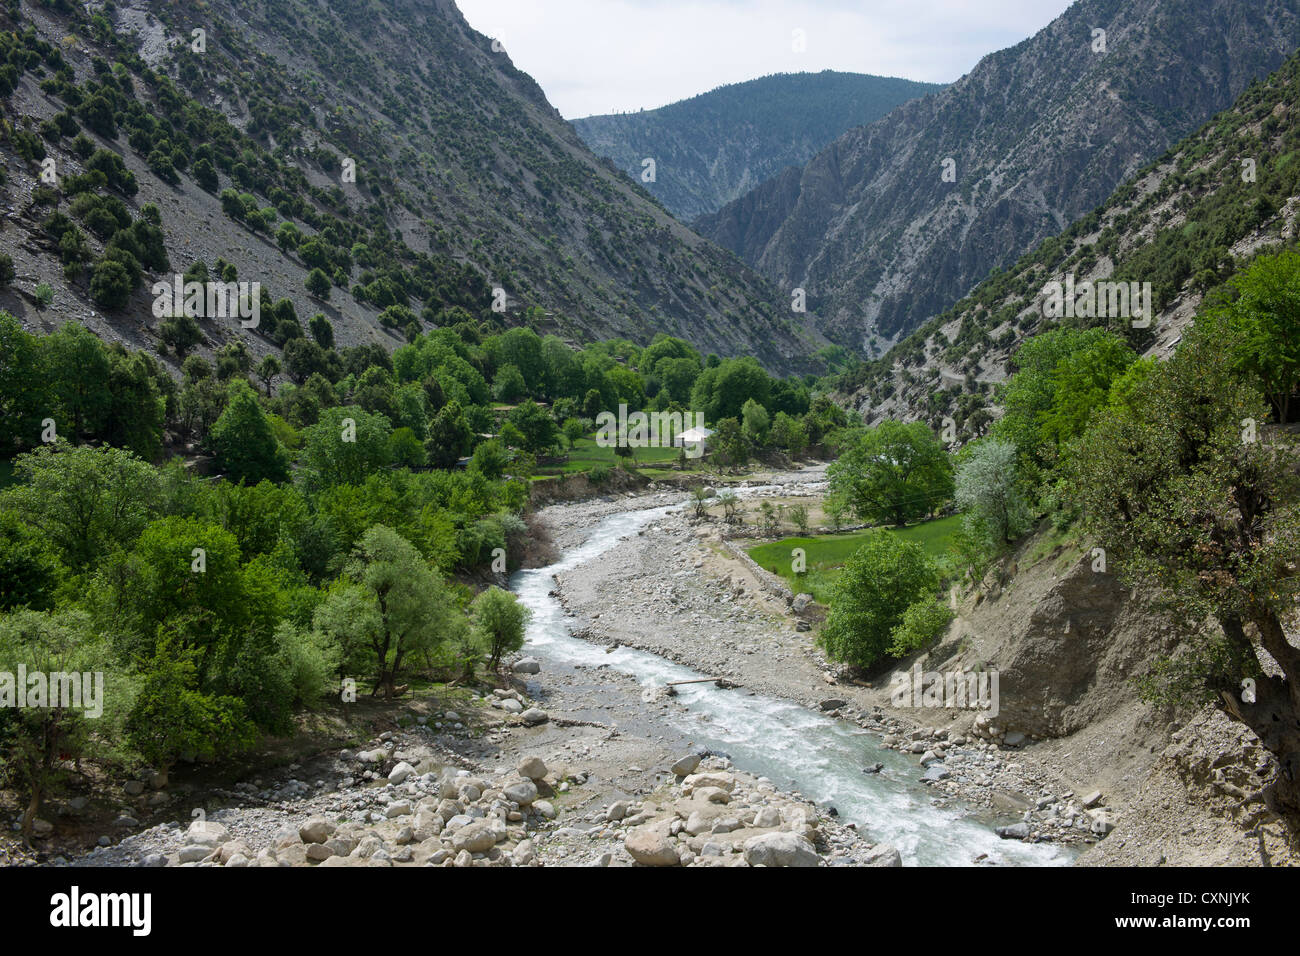 Looking up the Rumbur Valley, Chitral, Khyber-Pakhtunkhwa, Pakistan - Stock Image